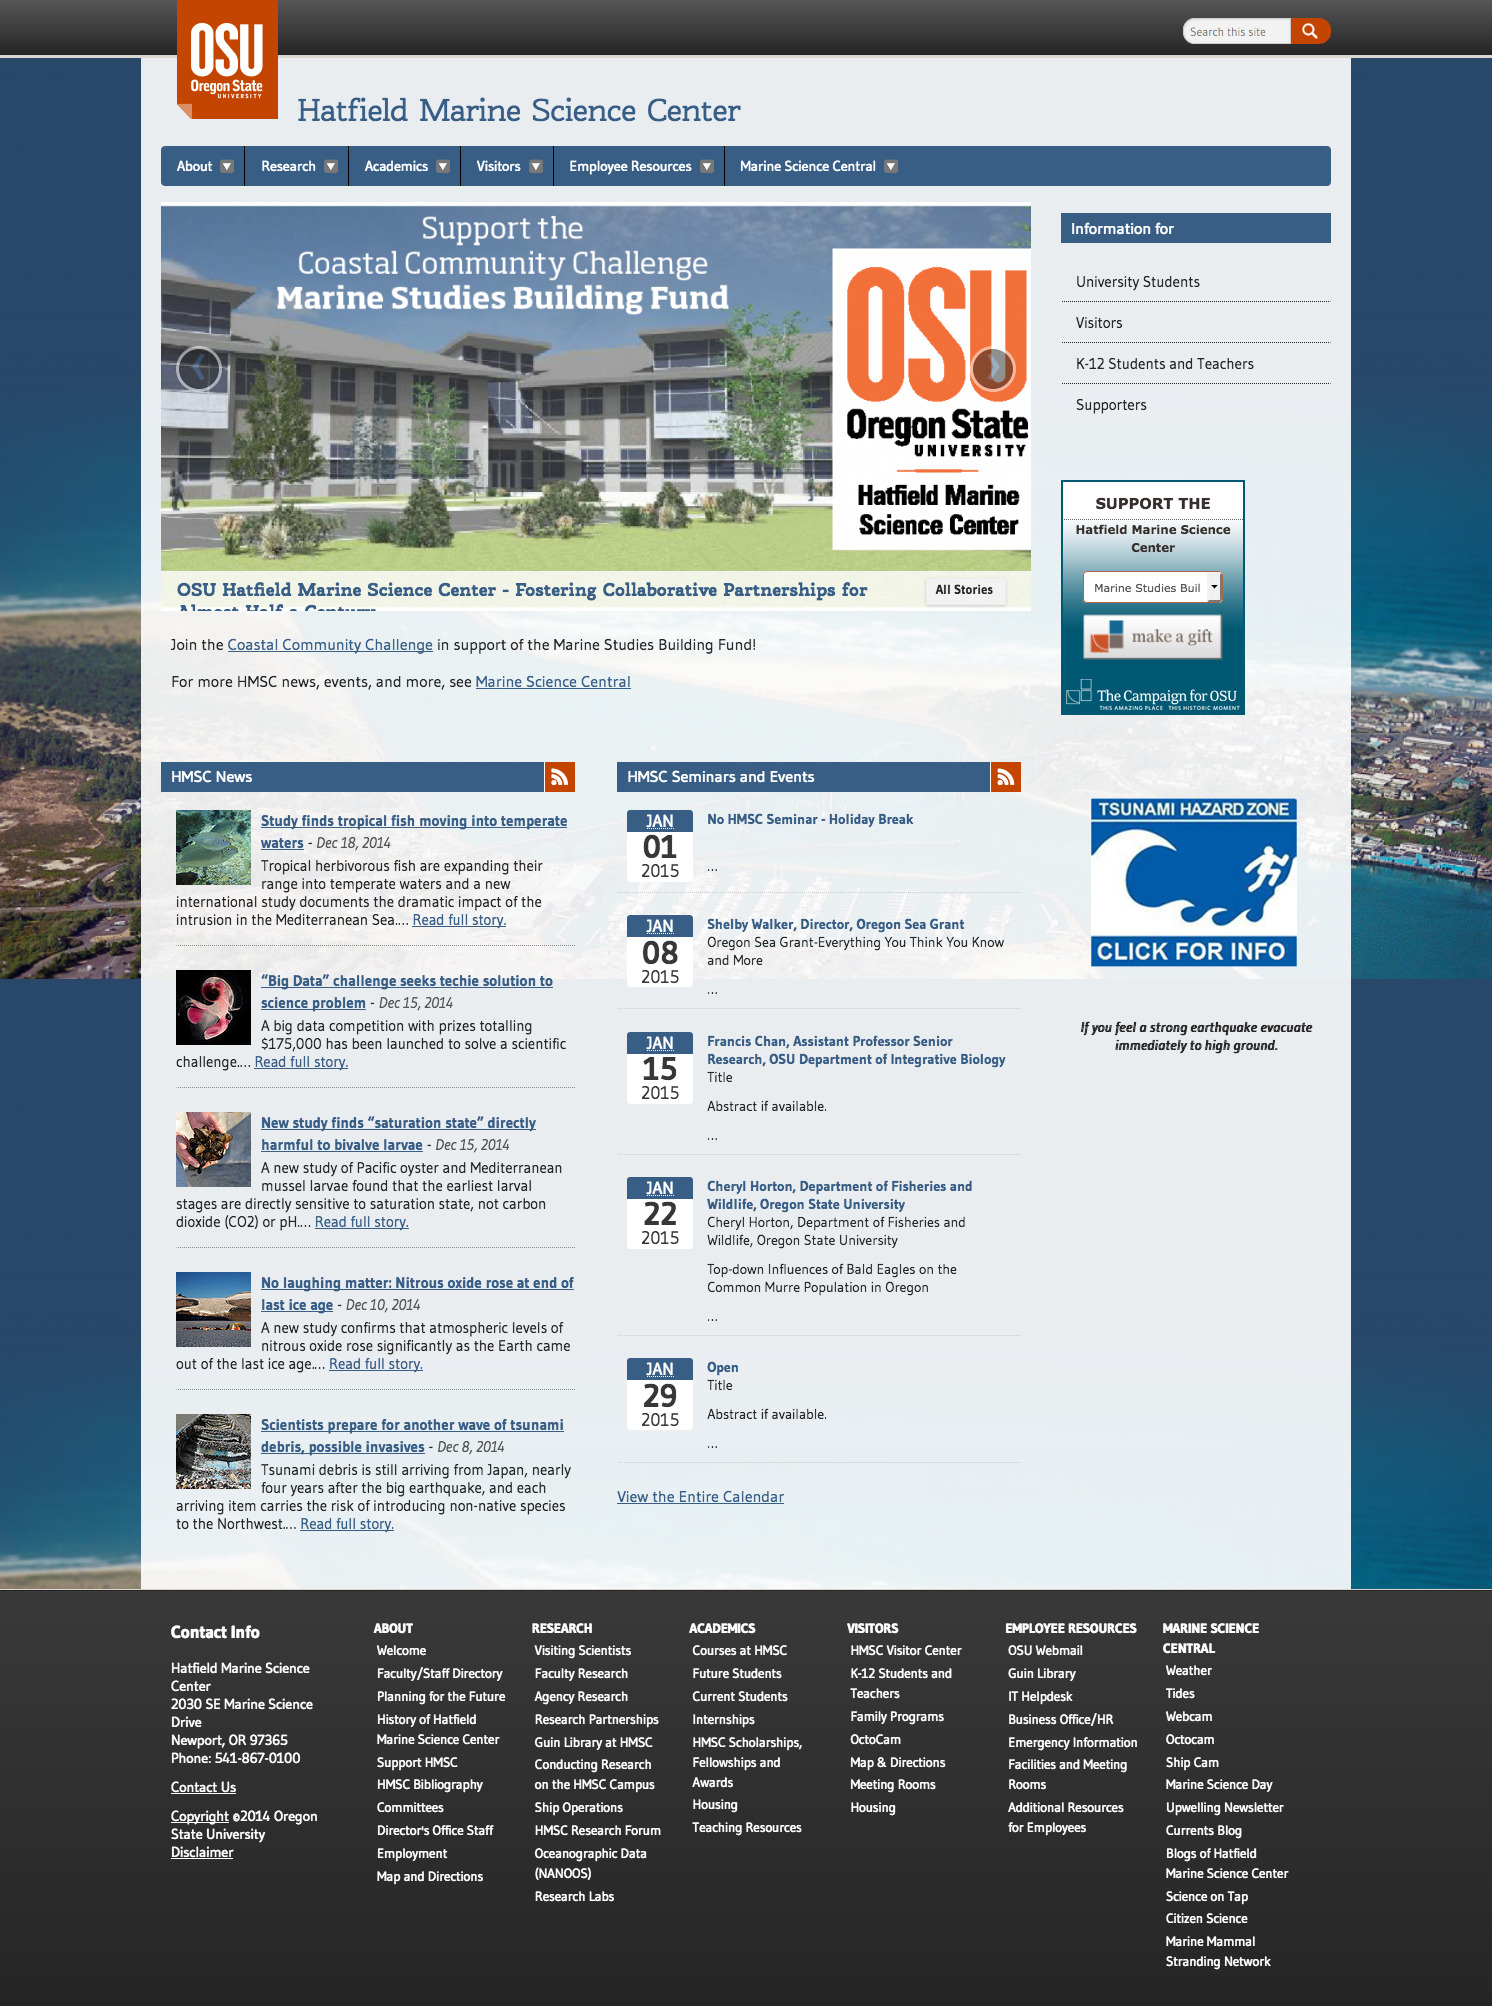 Oregon State University Hatfield Marine Science Center Home Page - 2014